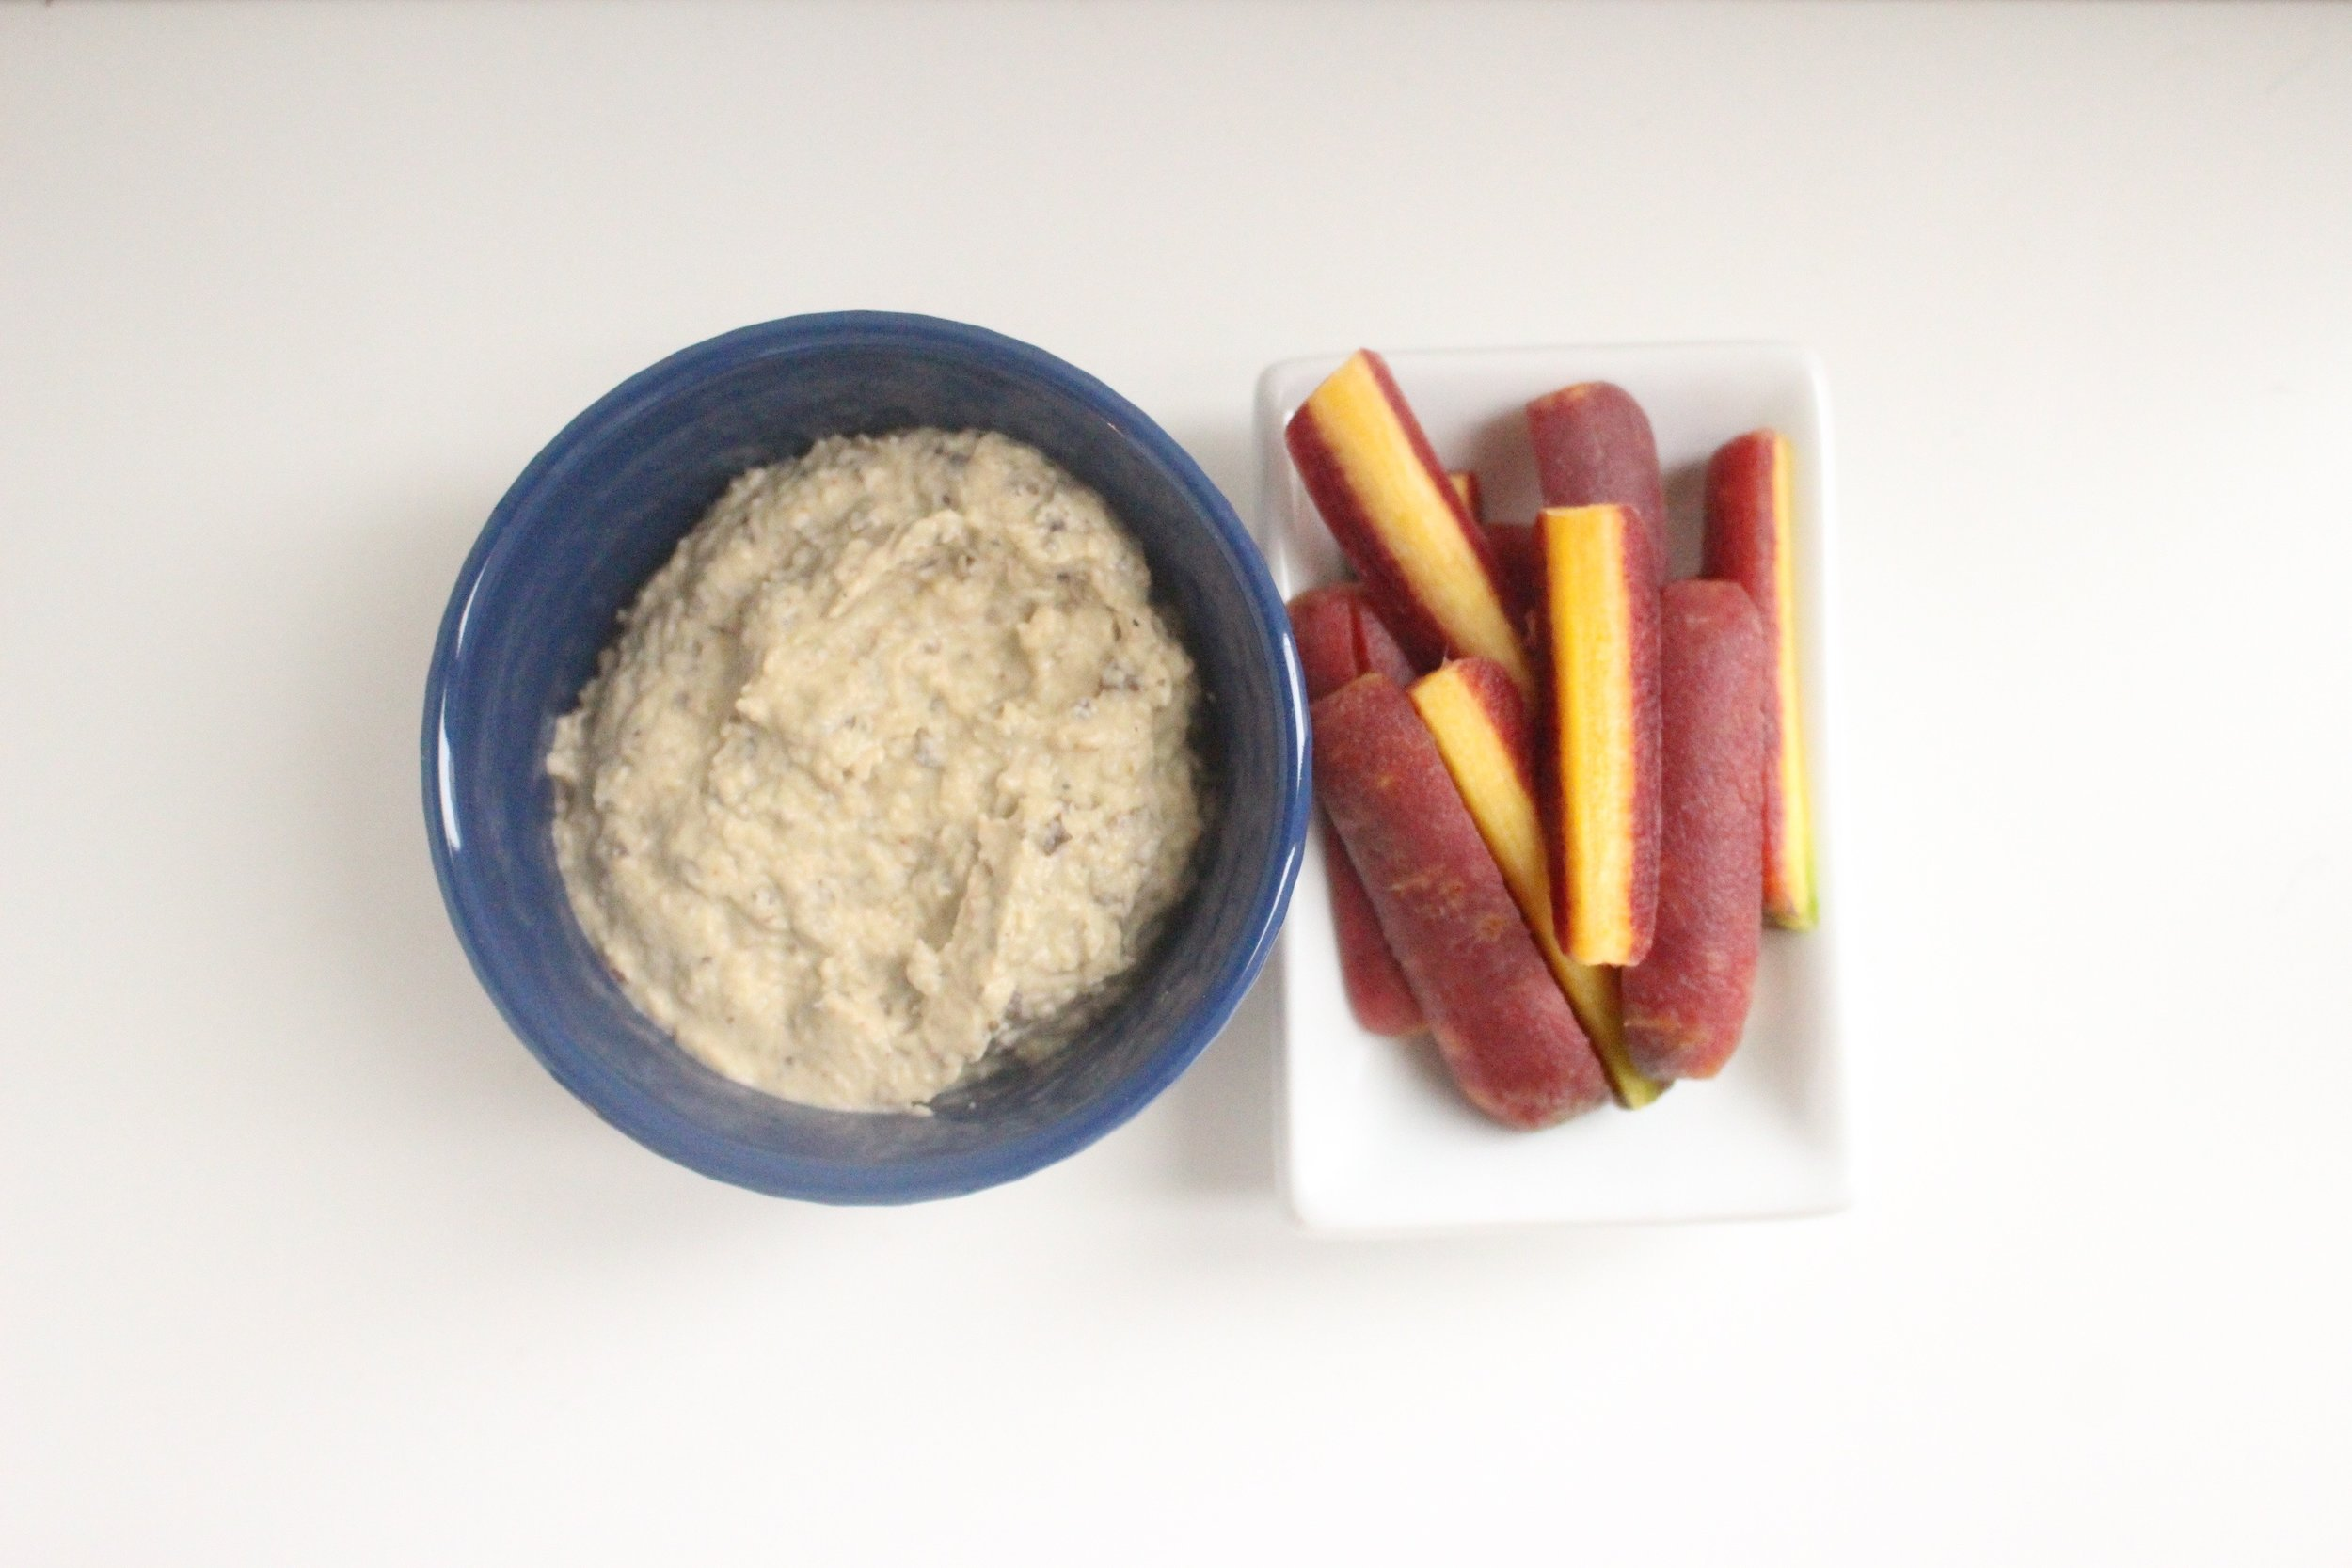 Babaganoush | Me & The Moose. What's better than a dip that's mostly veggies? #meandthemoose #whole30 #whole30recipes #babaganoush #snacks #snackrecipes #diprecipes